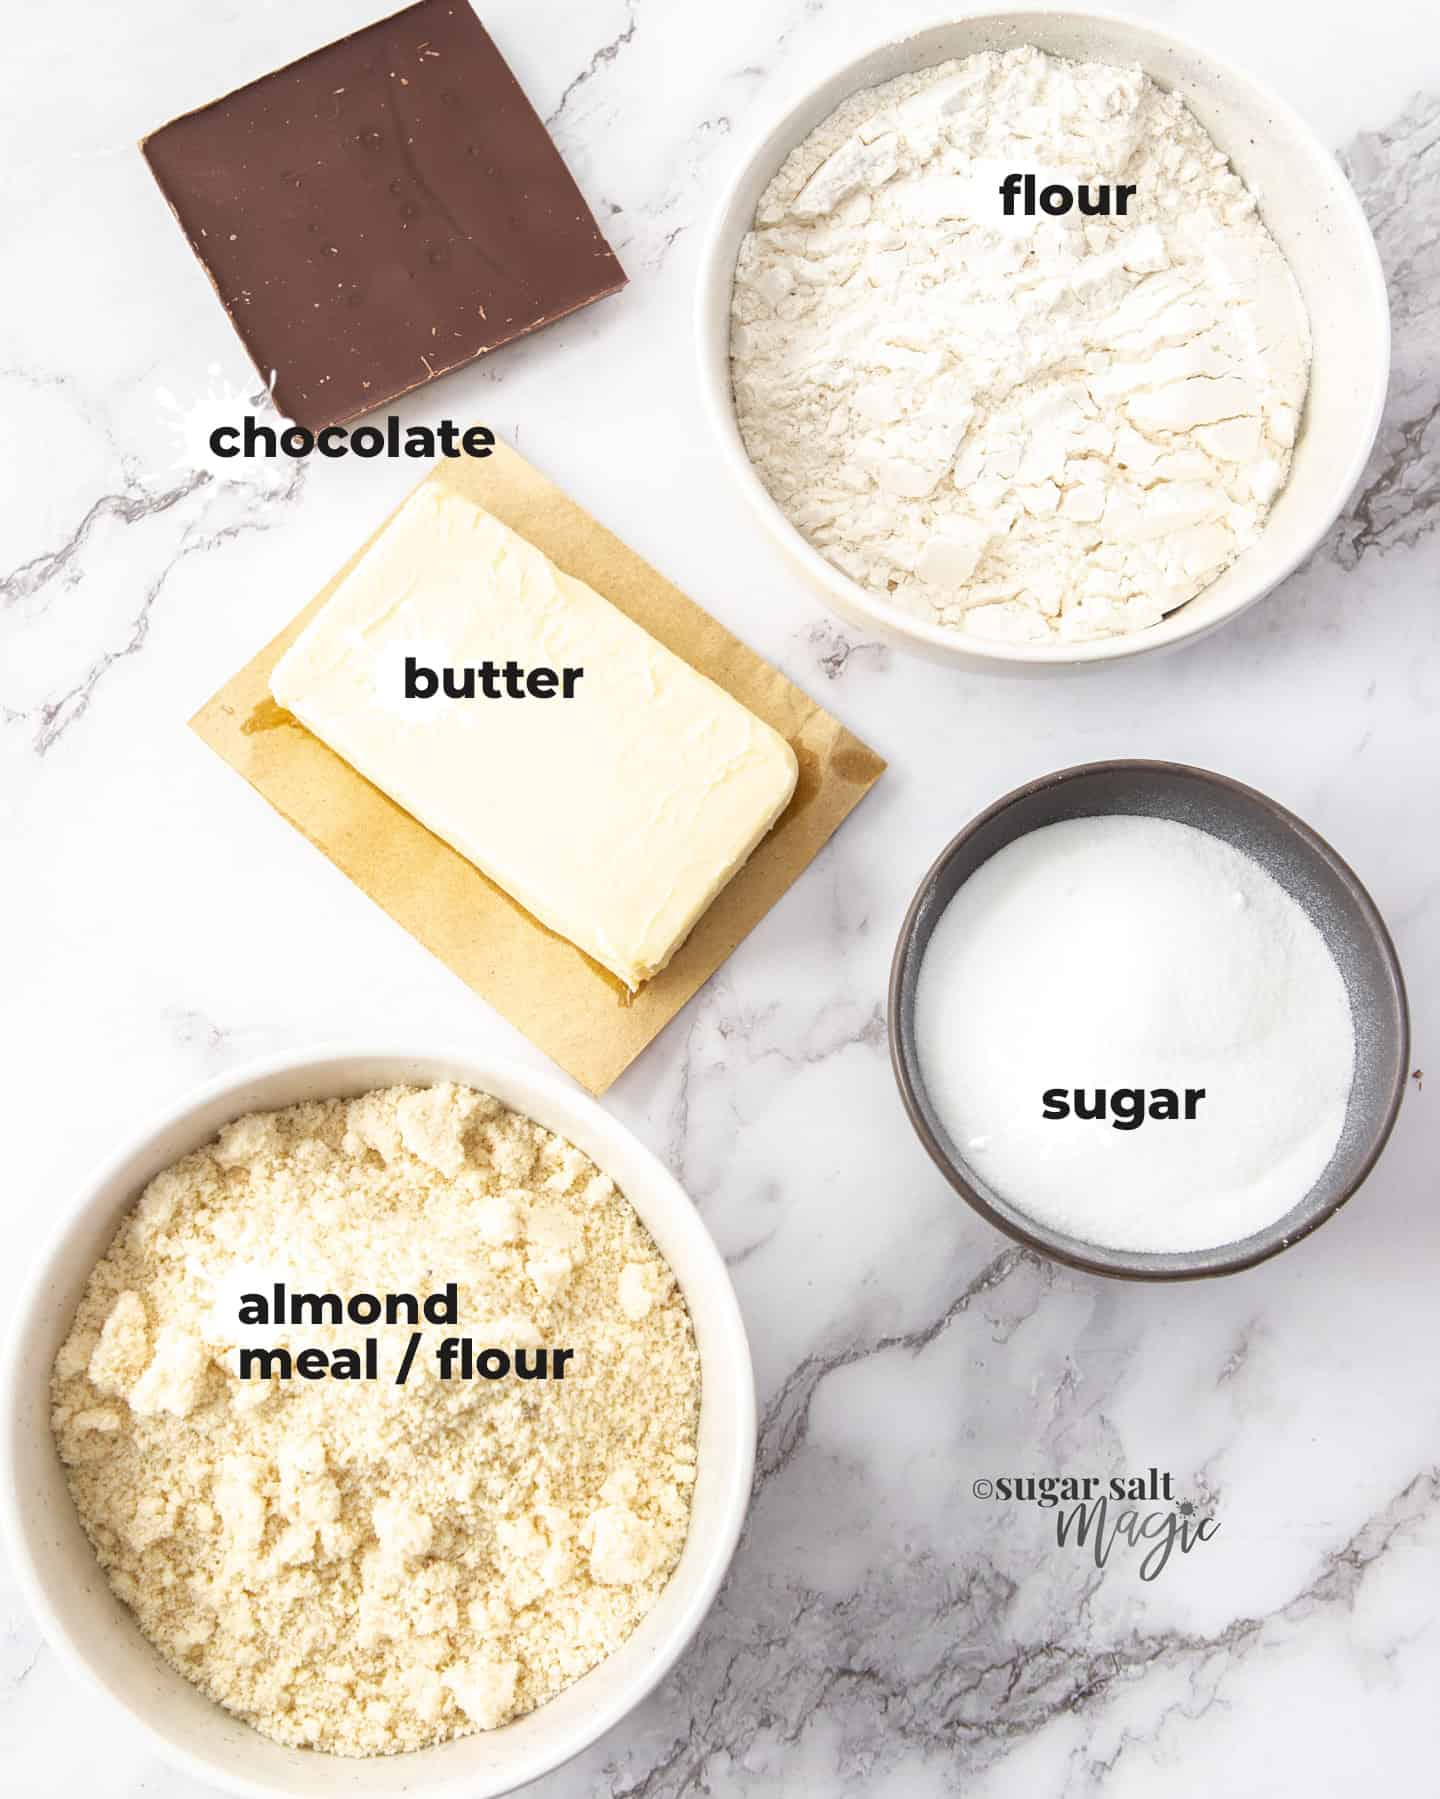 Ingredients on a marble surface.